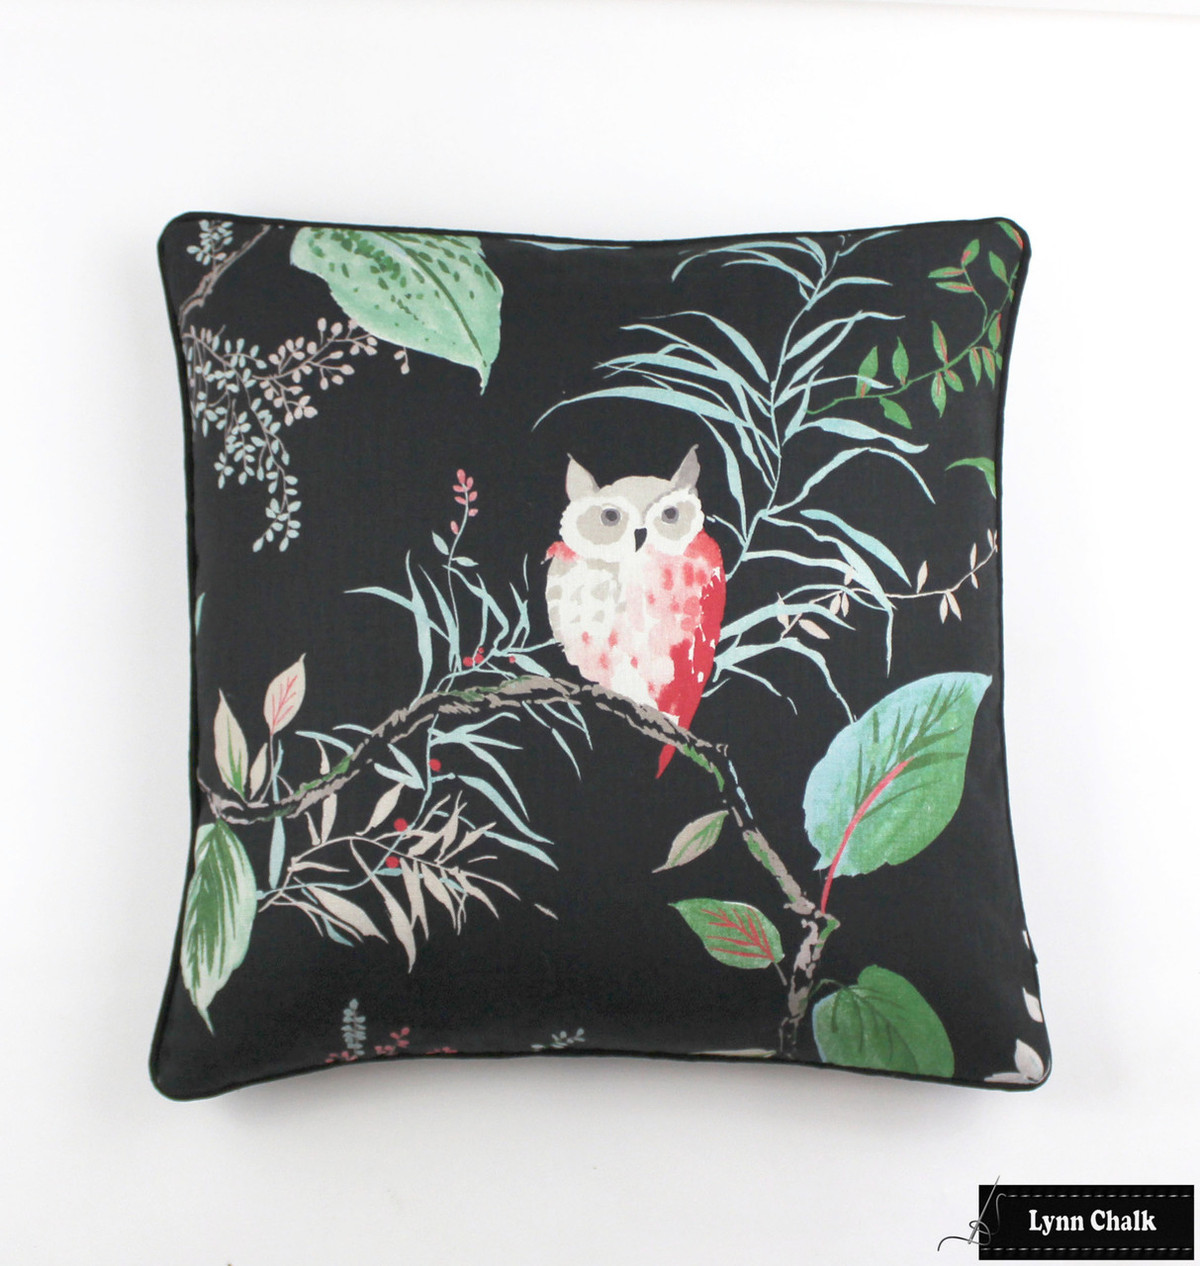 spade kate pillows pillow york idiom rr new large products